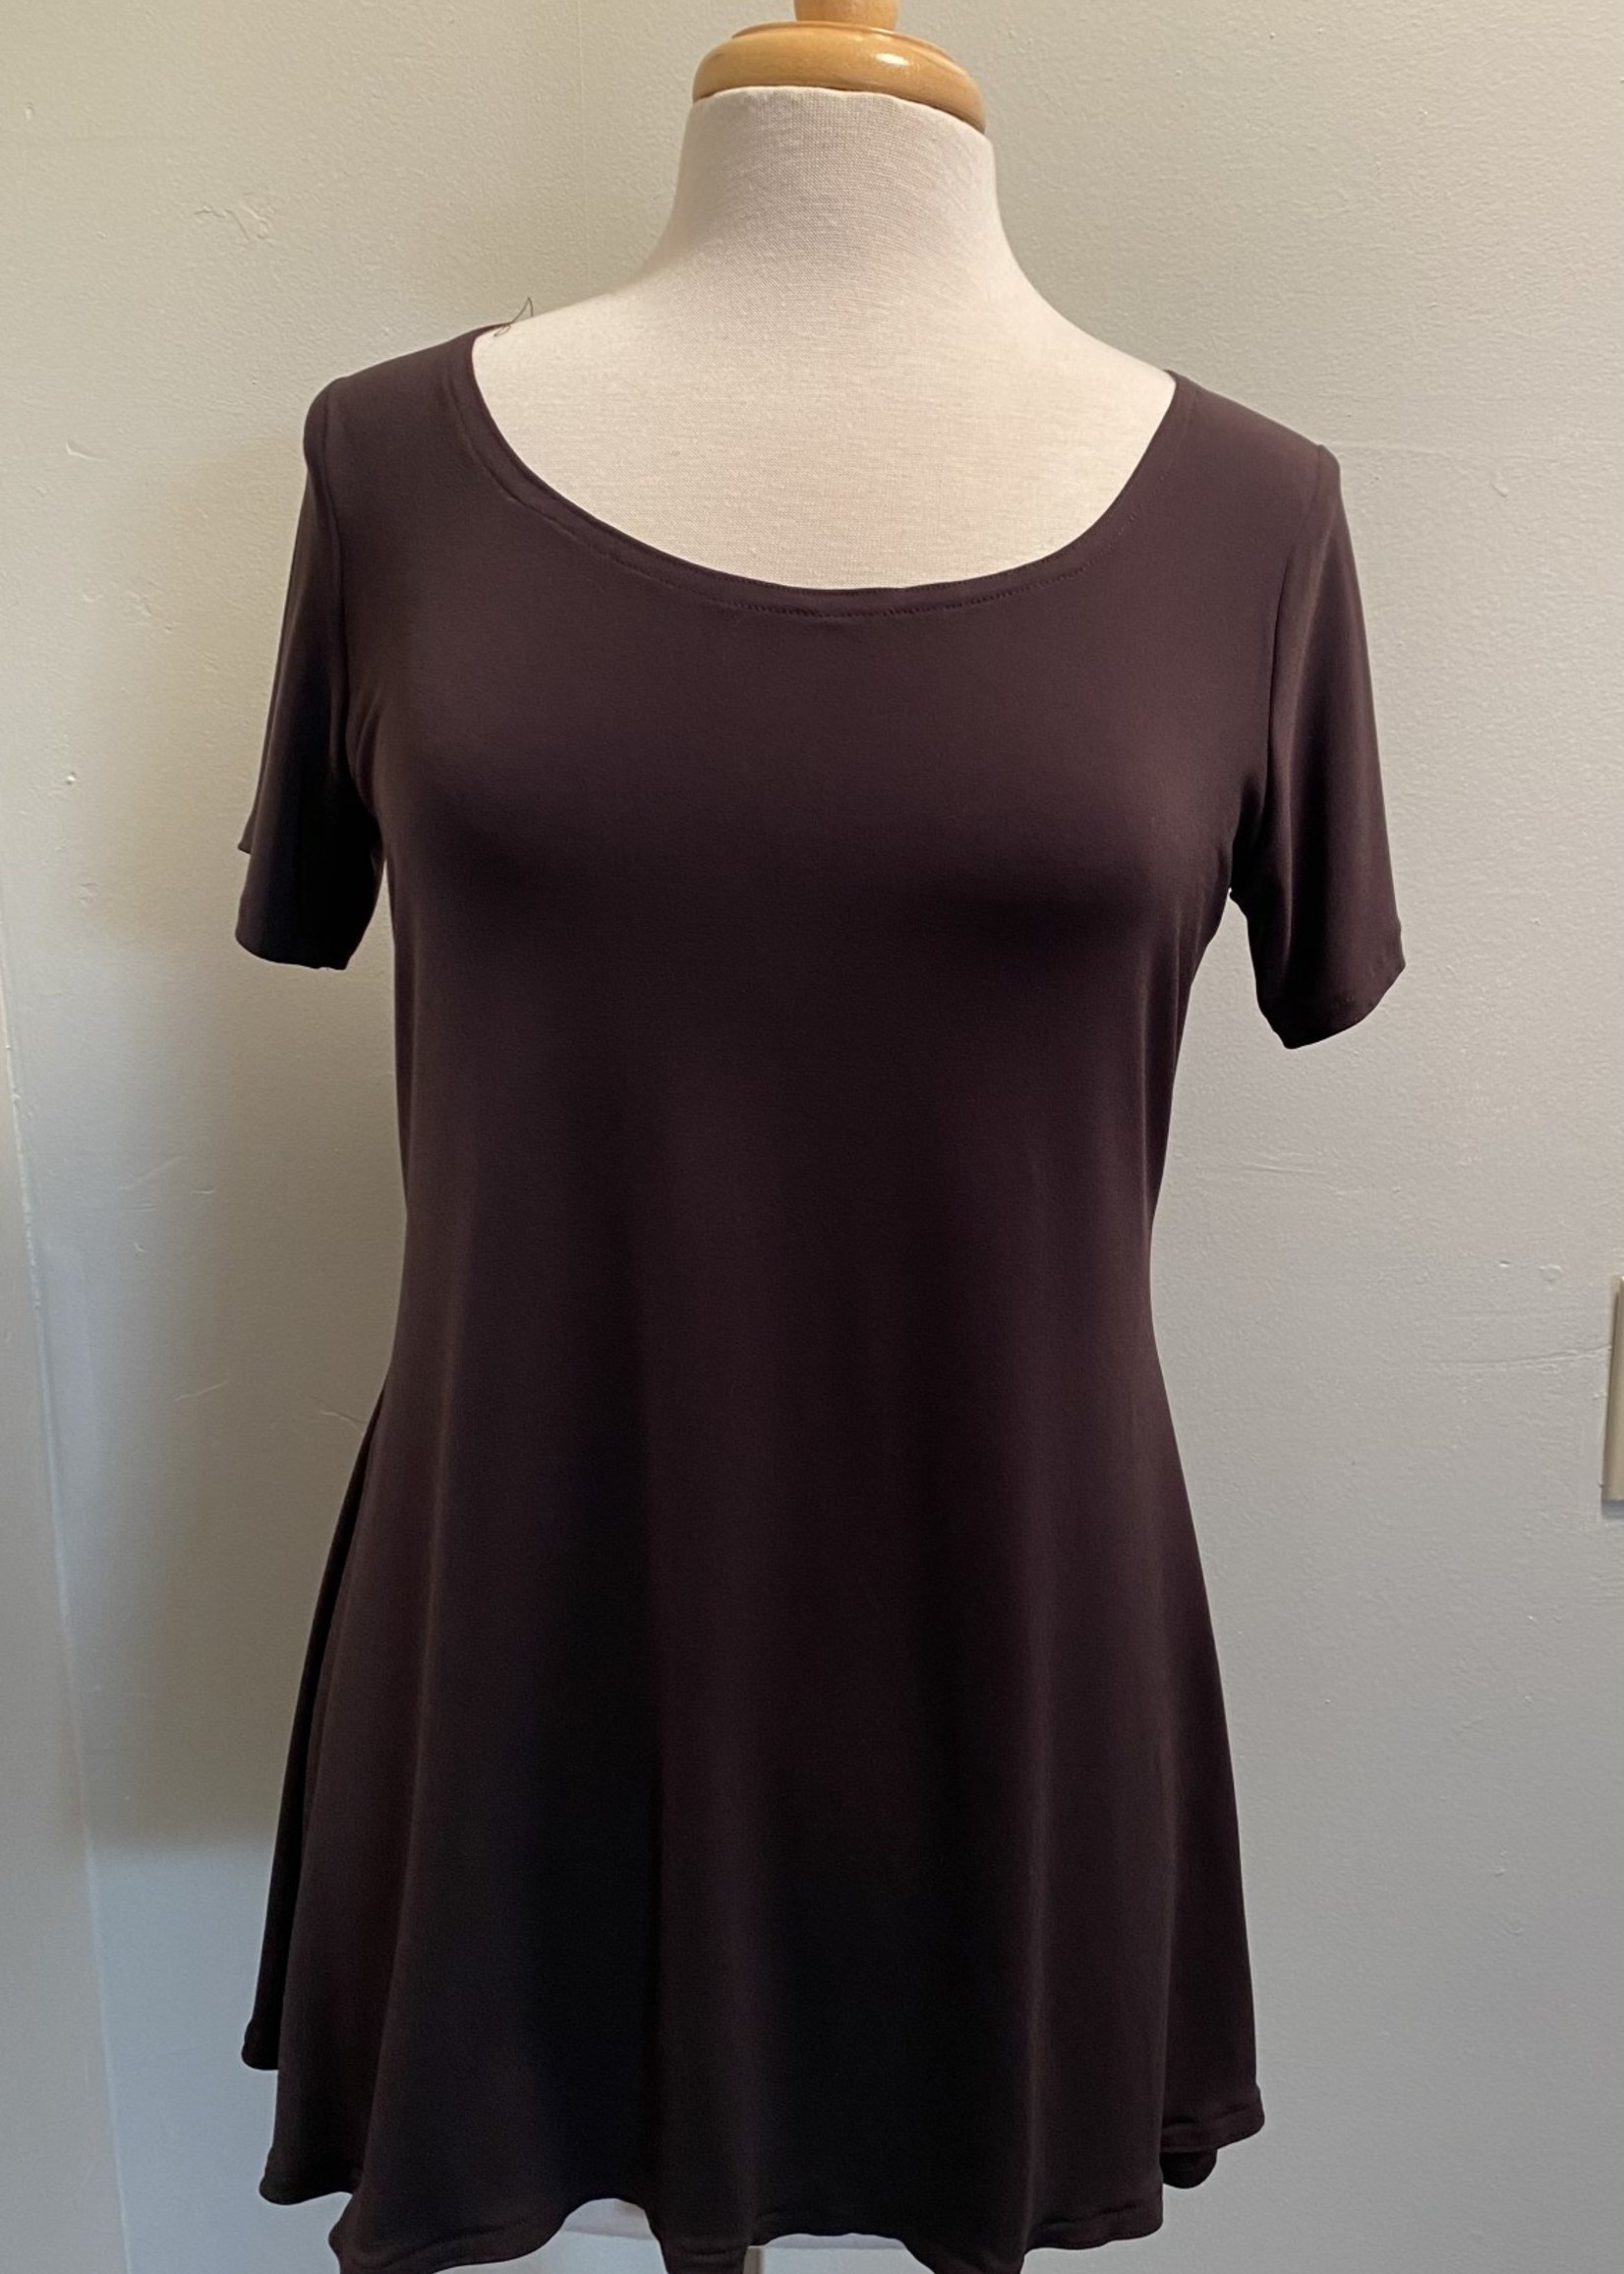 W SHIRT CAP SLEEVES (Couture Jersey)